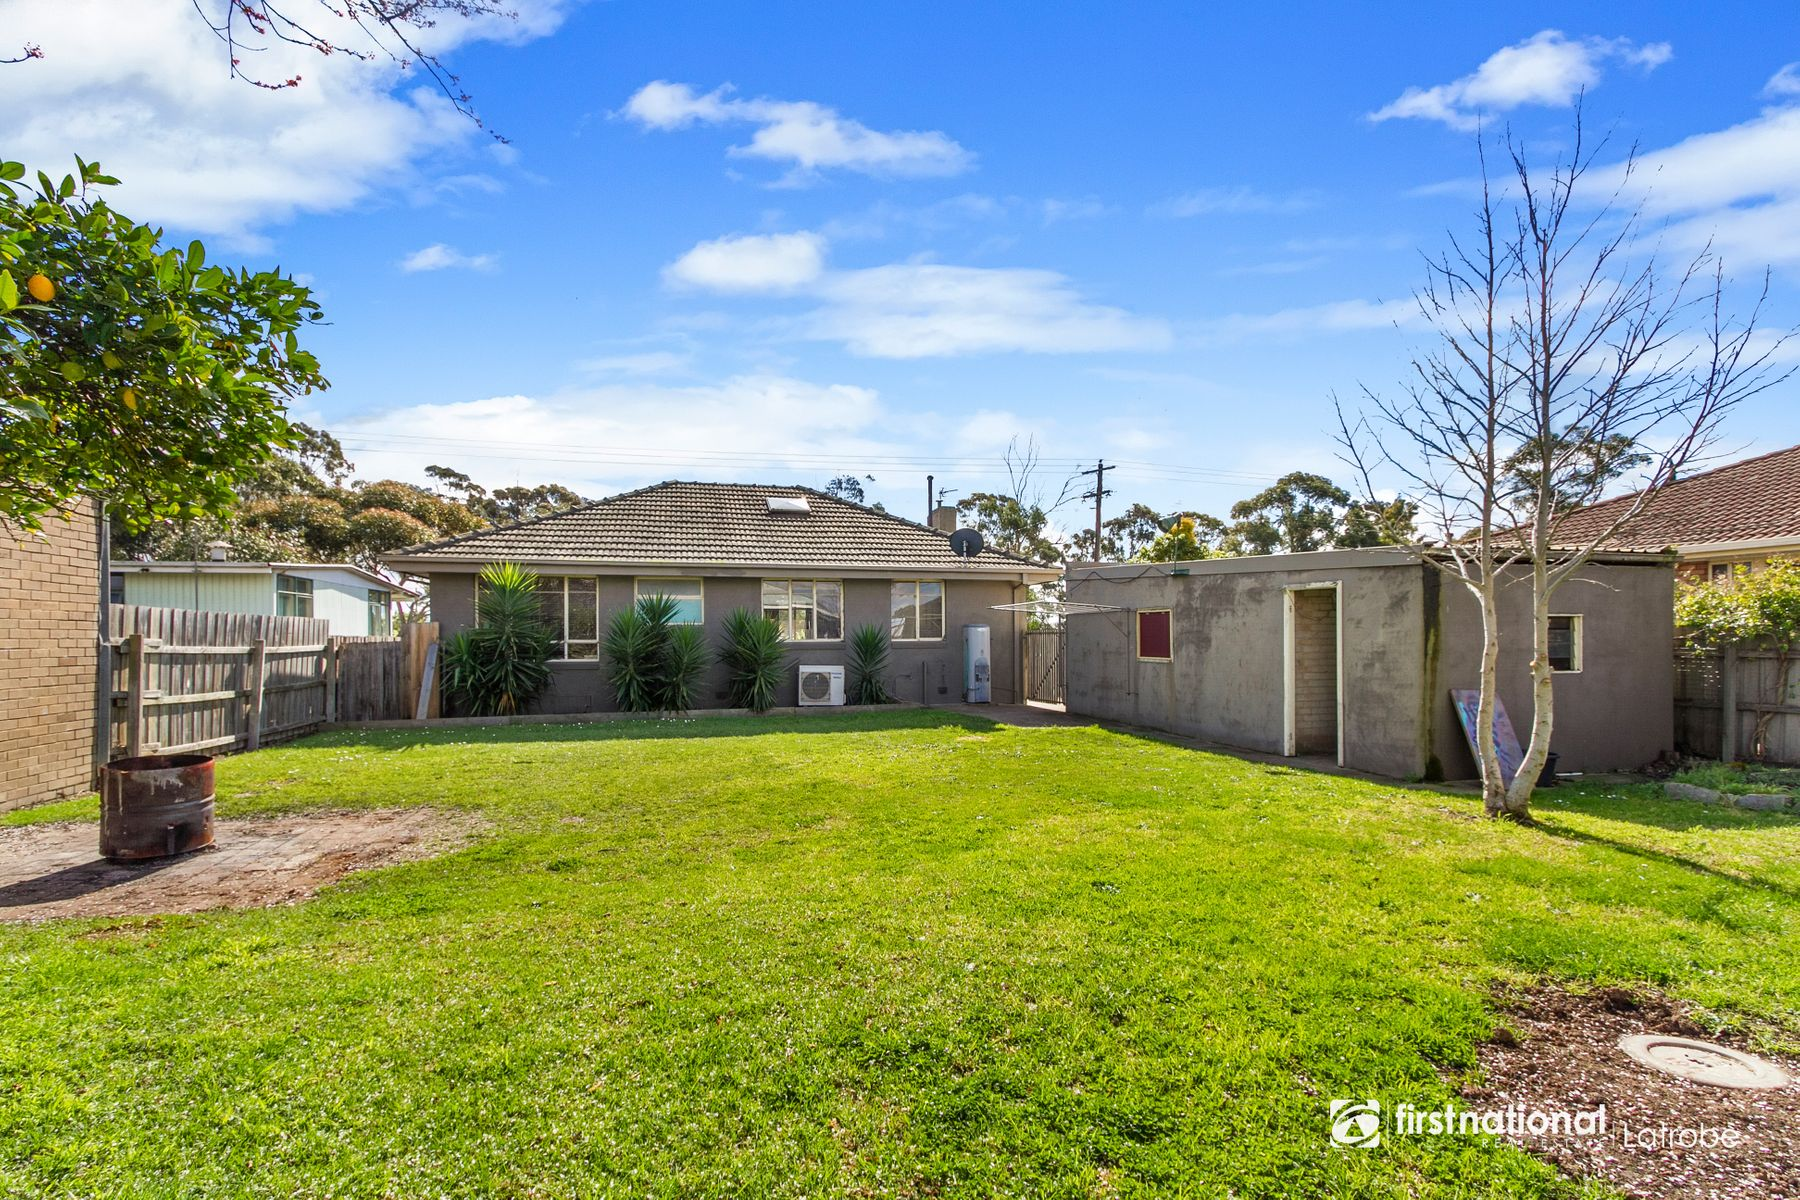 65 Bank Street, Traralgon, VIC 3844